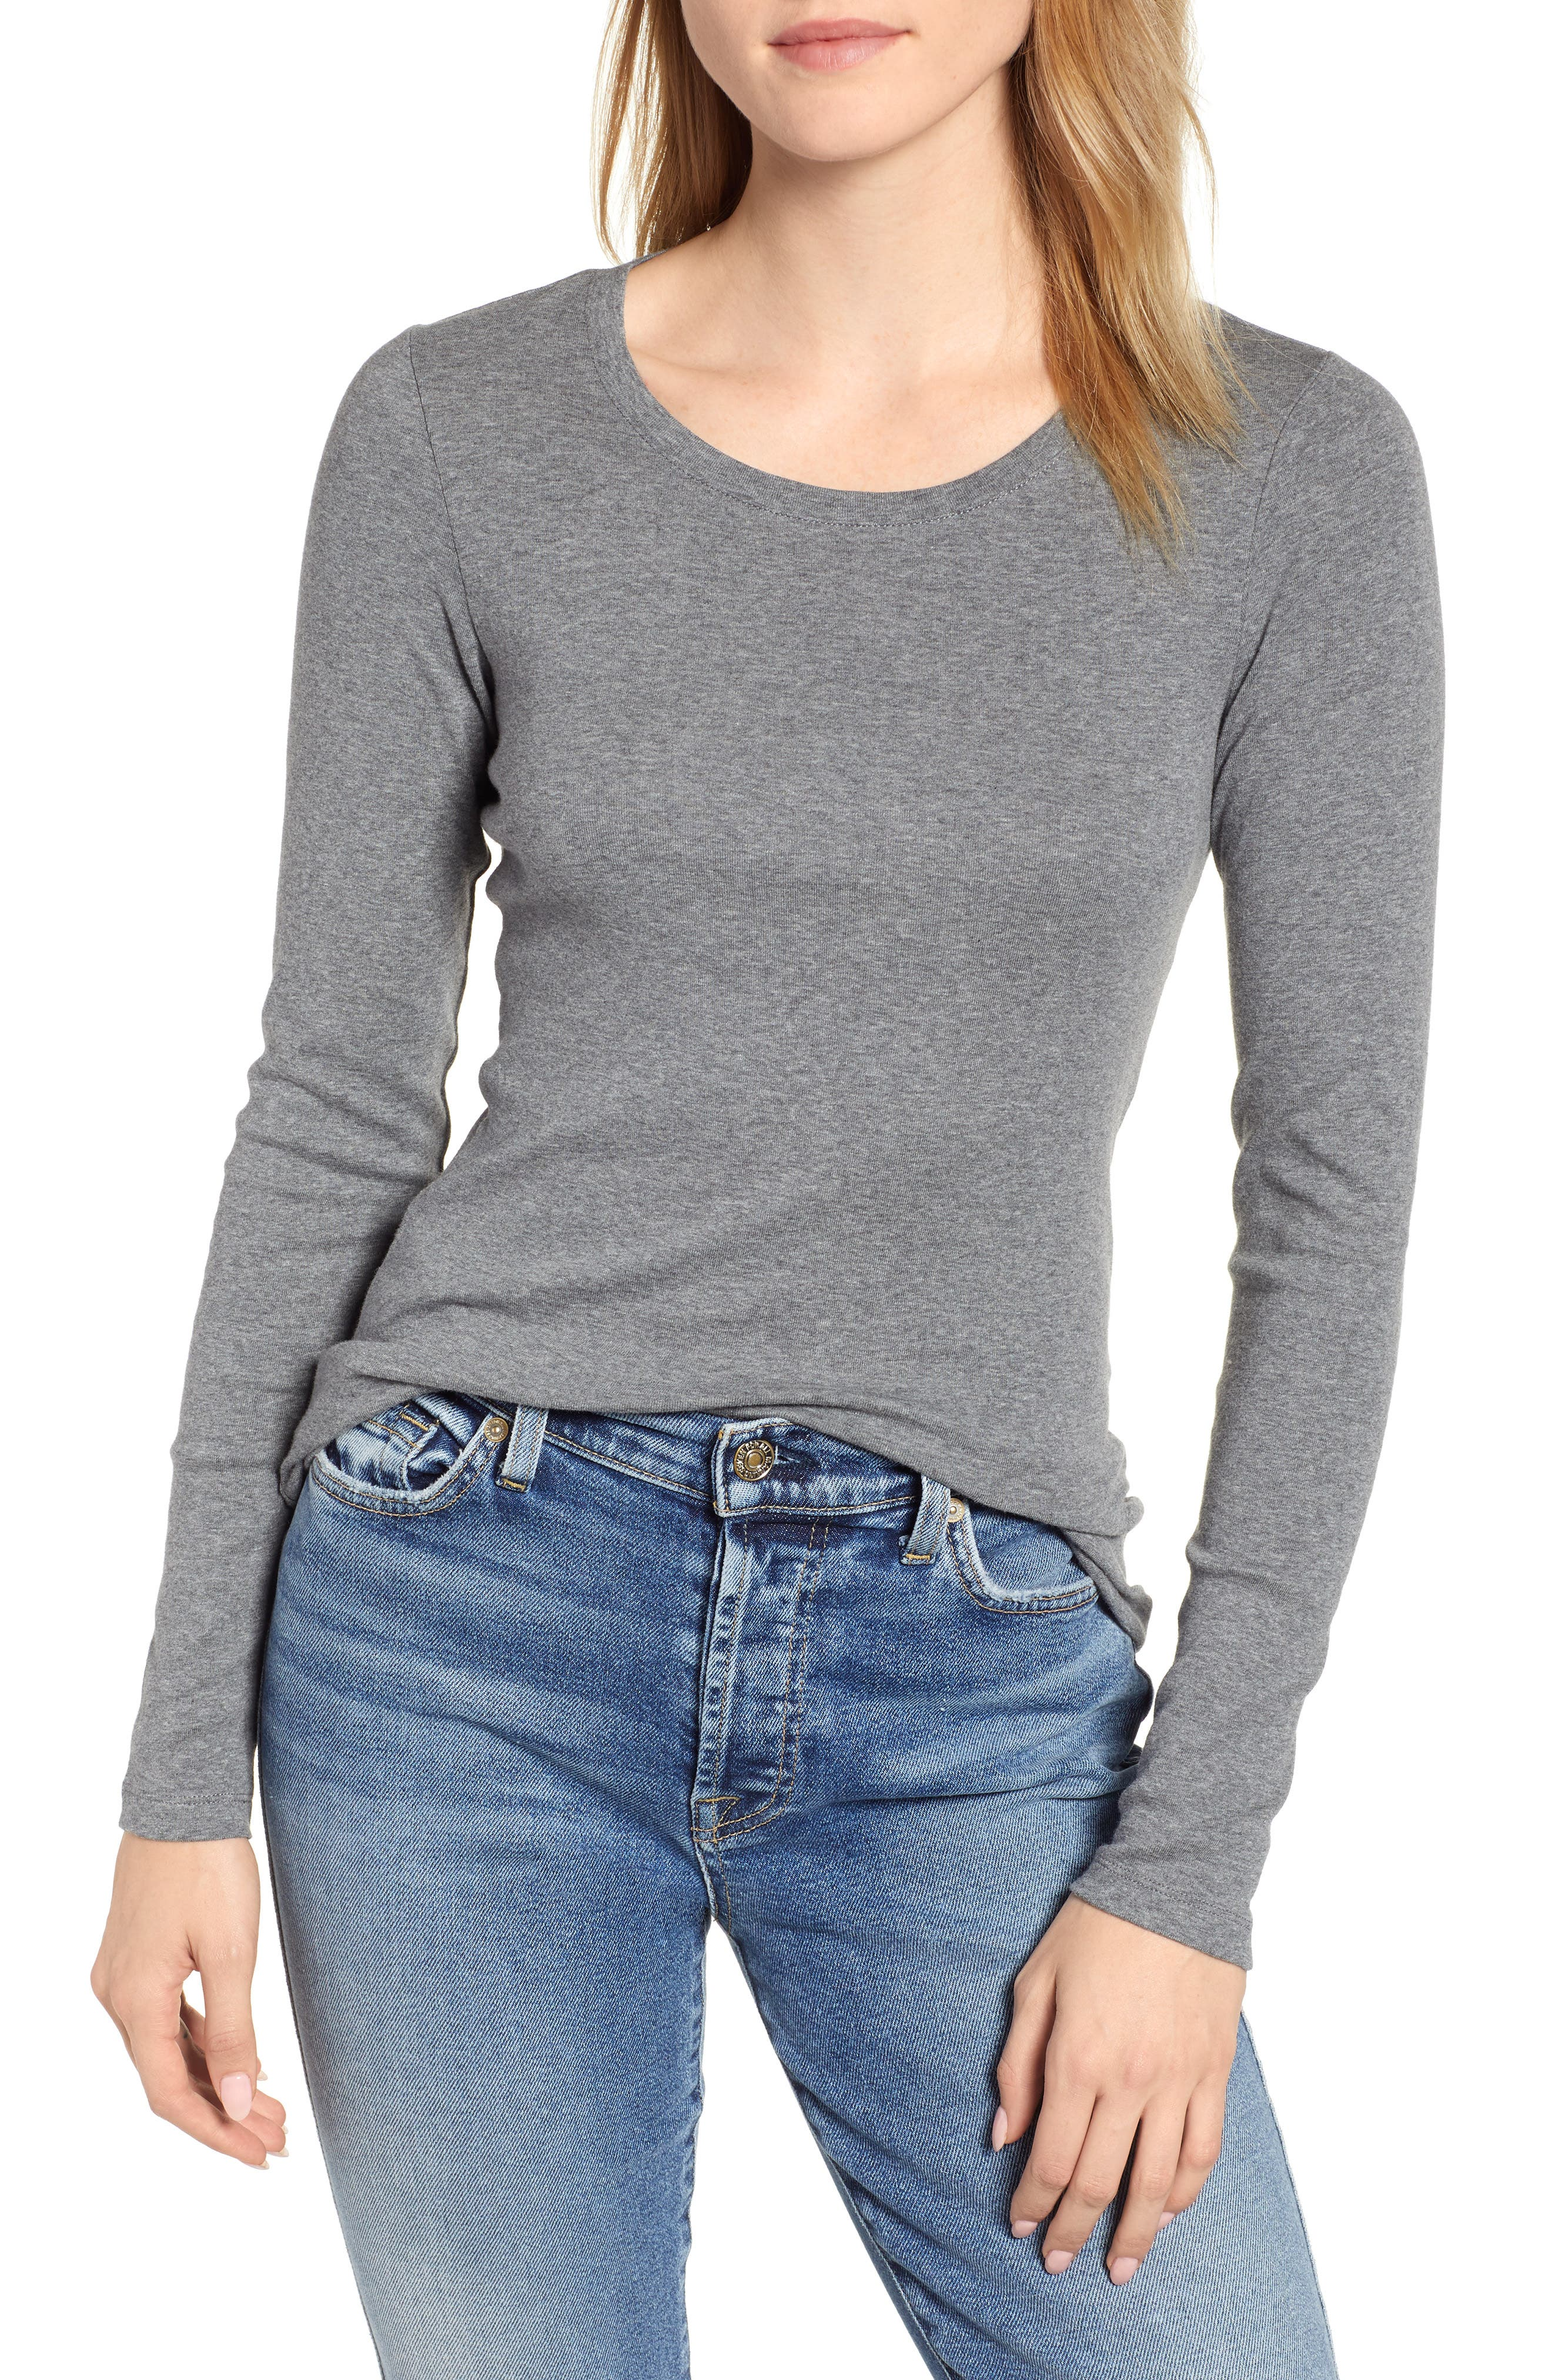 76bcfde481226 Women s Long Sleeve Tops